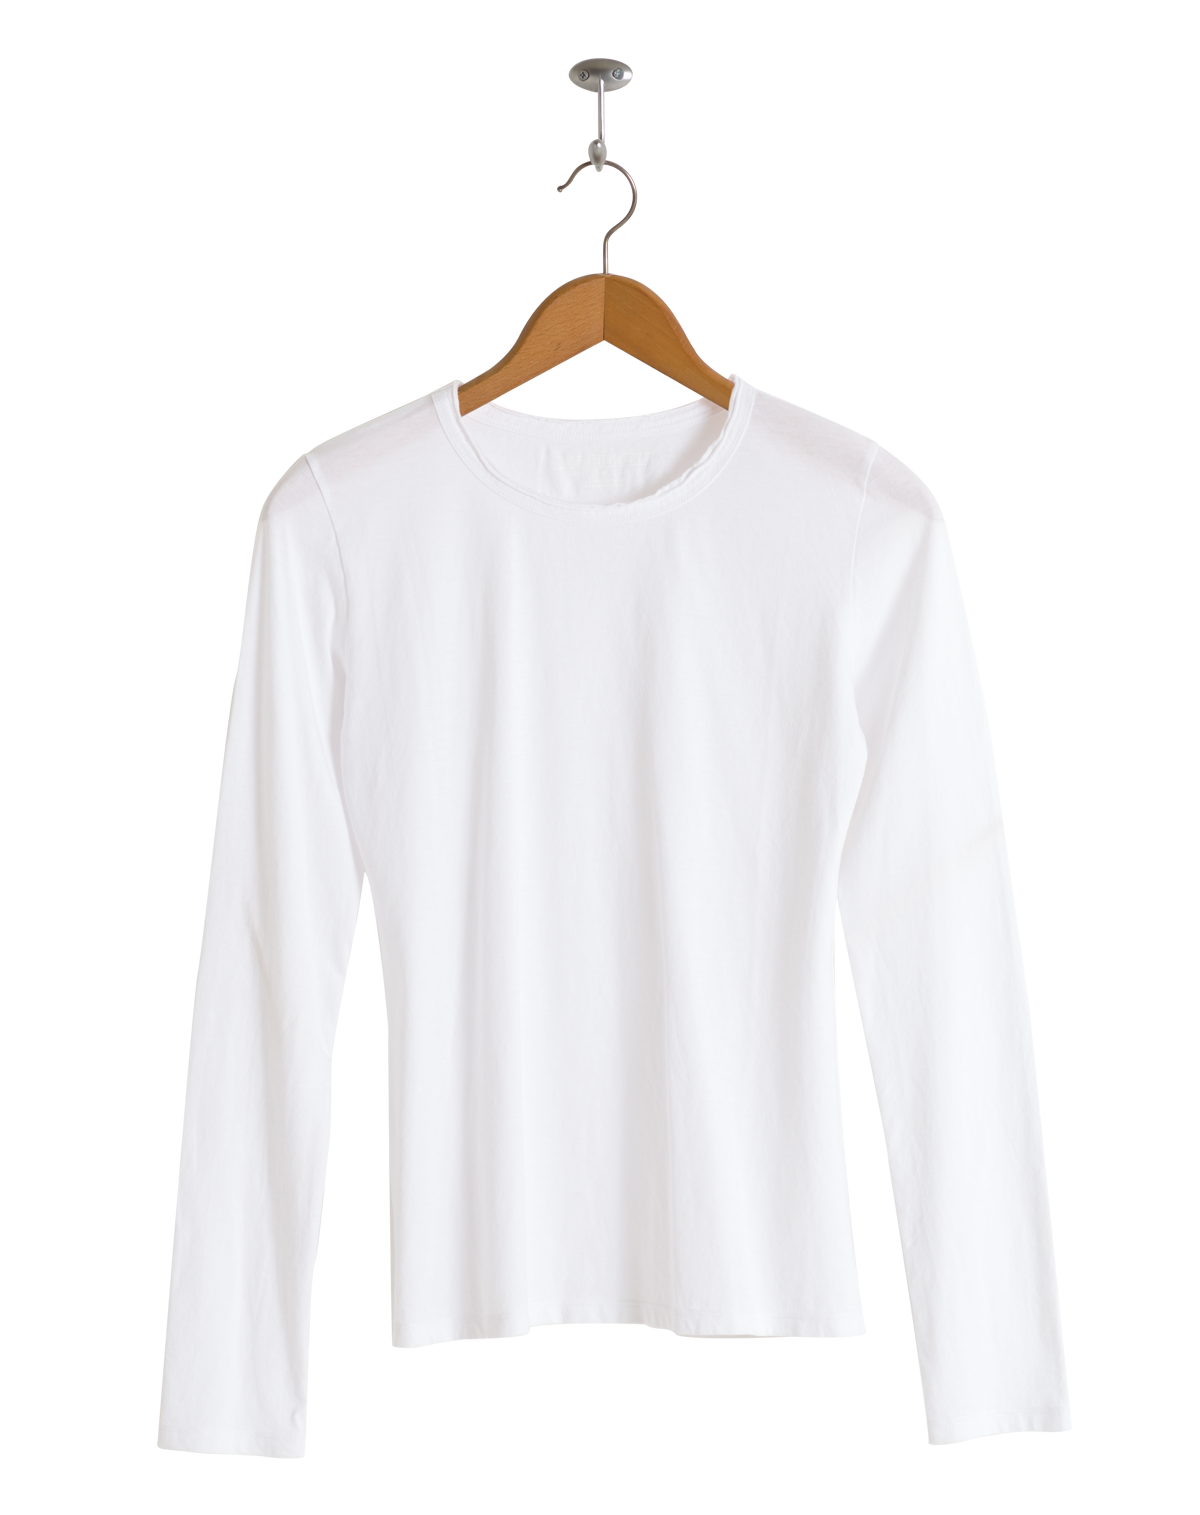 Neushop Women's Corbi 100% Cotton Long Sleeve Premium T-Shirt